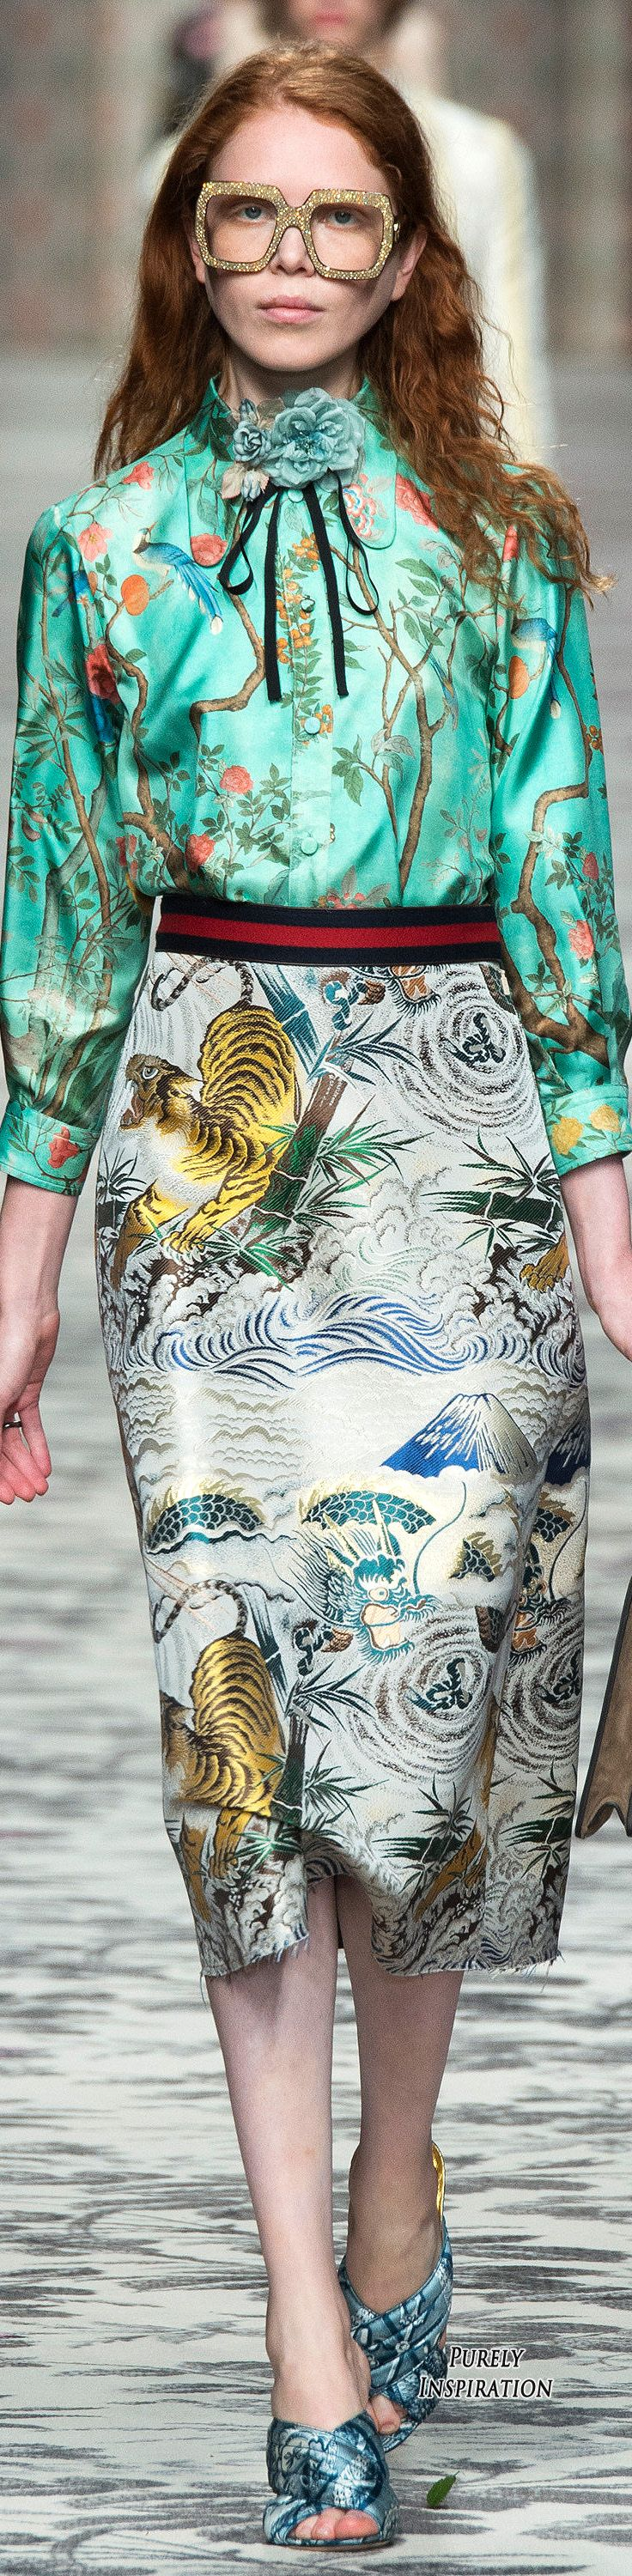 Gucci SS2016 Women's Fashion RTW | Purely Inspiration ∞➳ #phairytalestyle